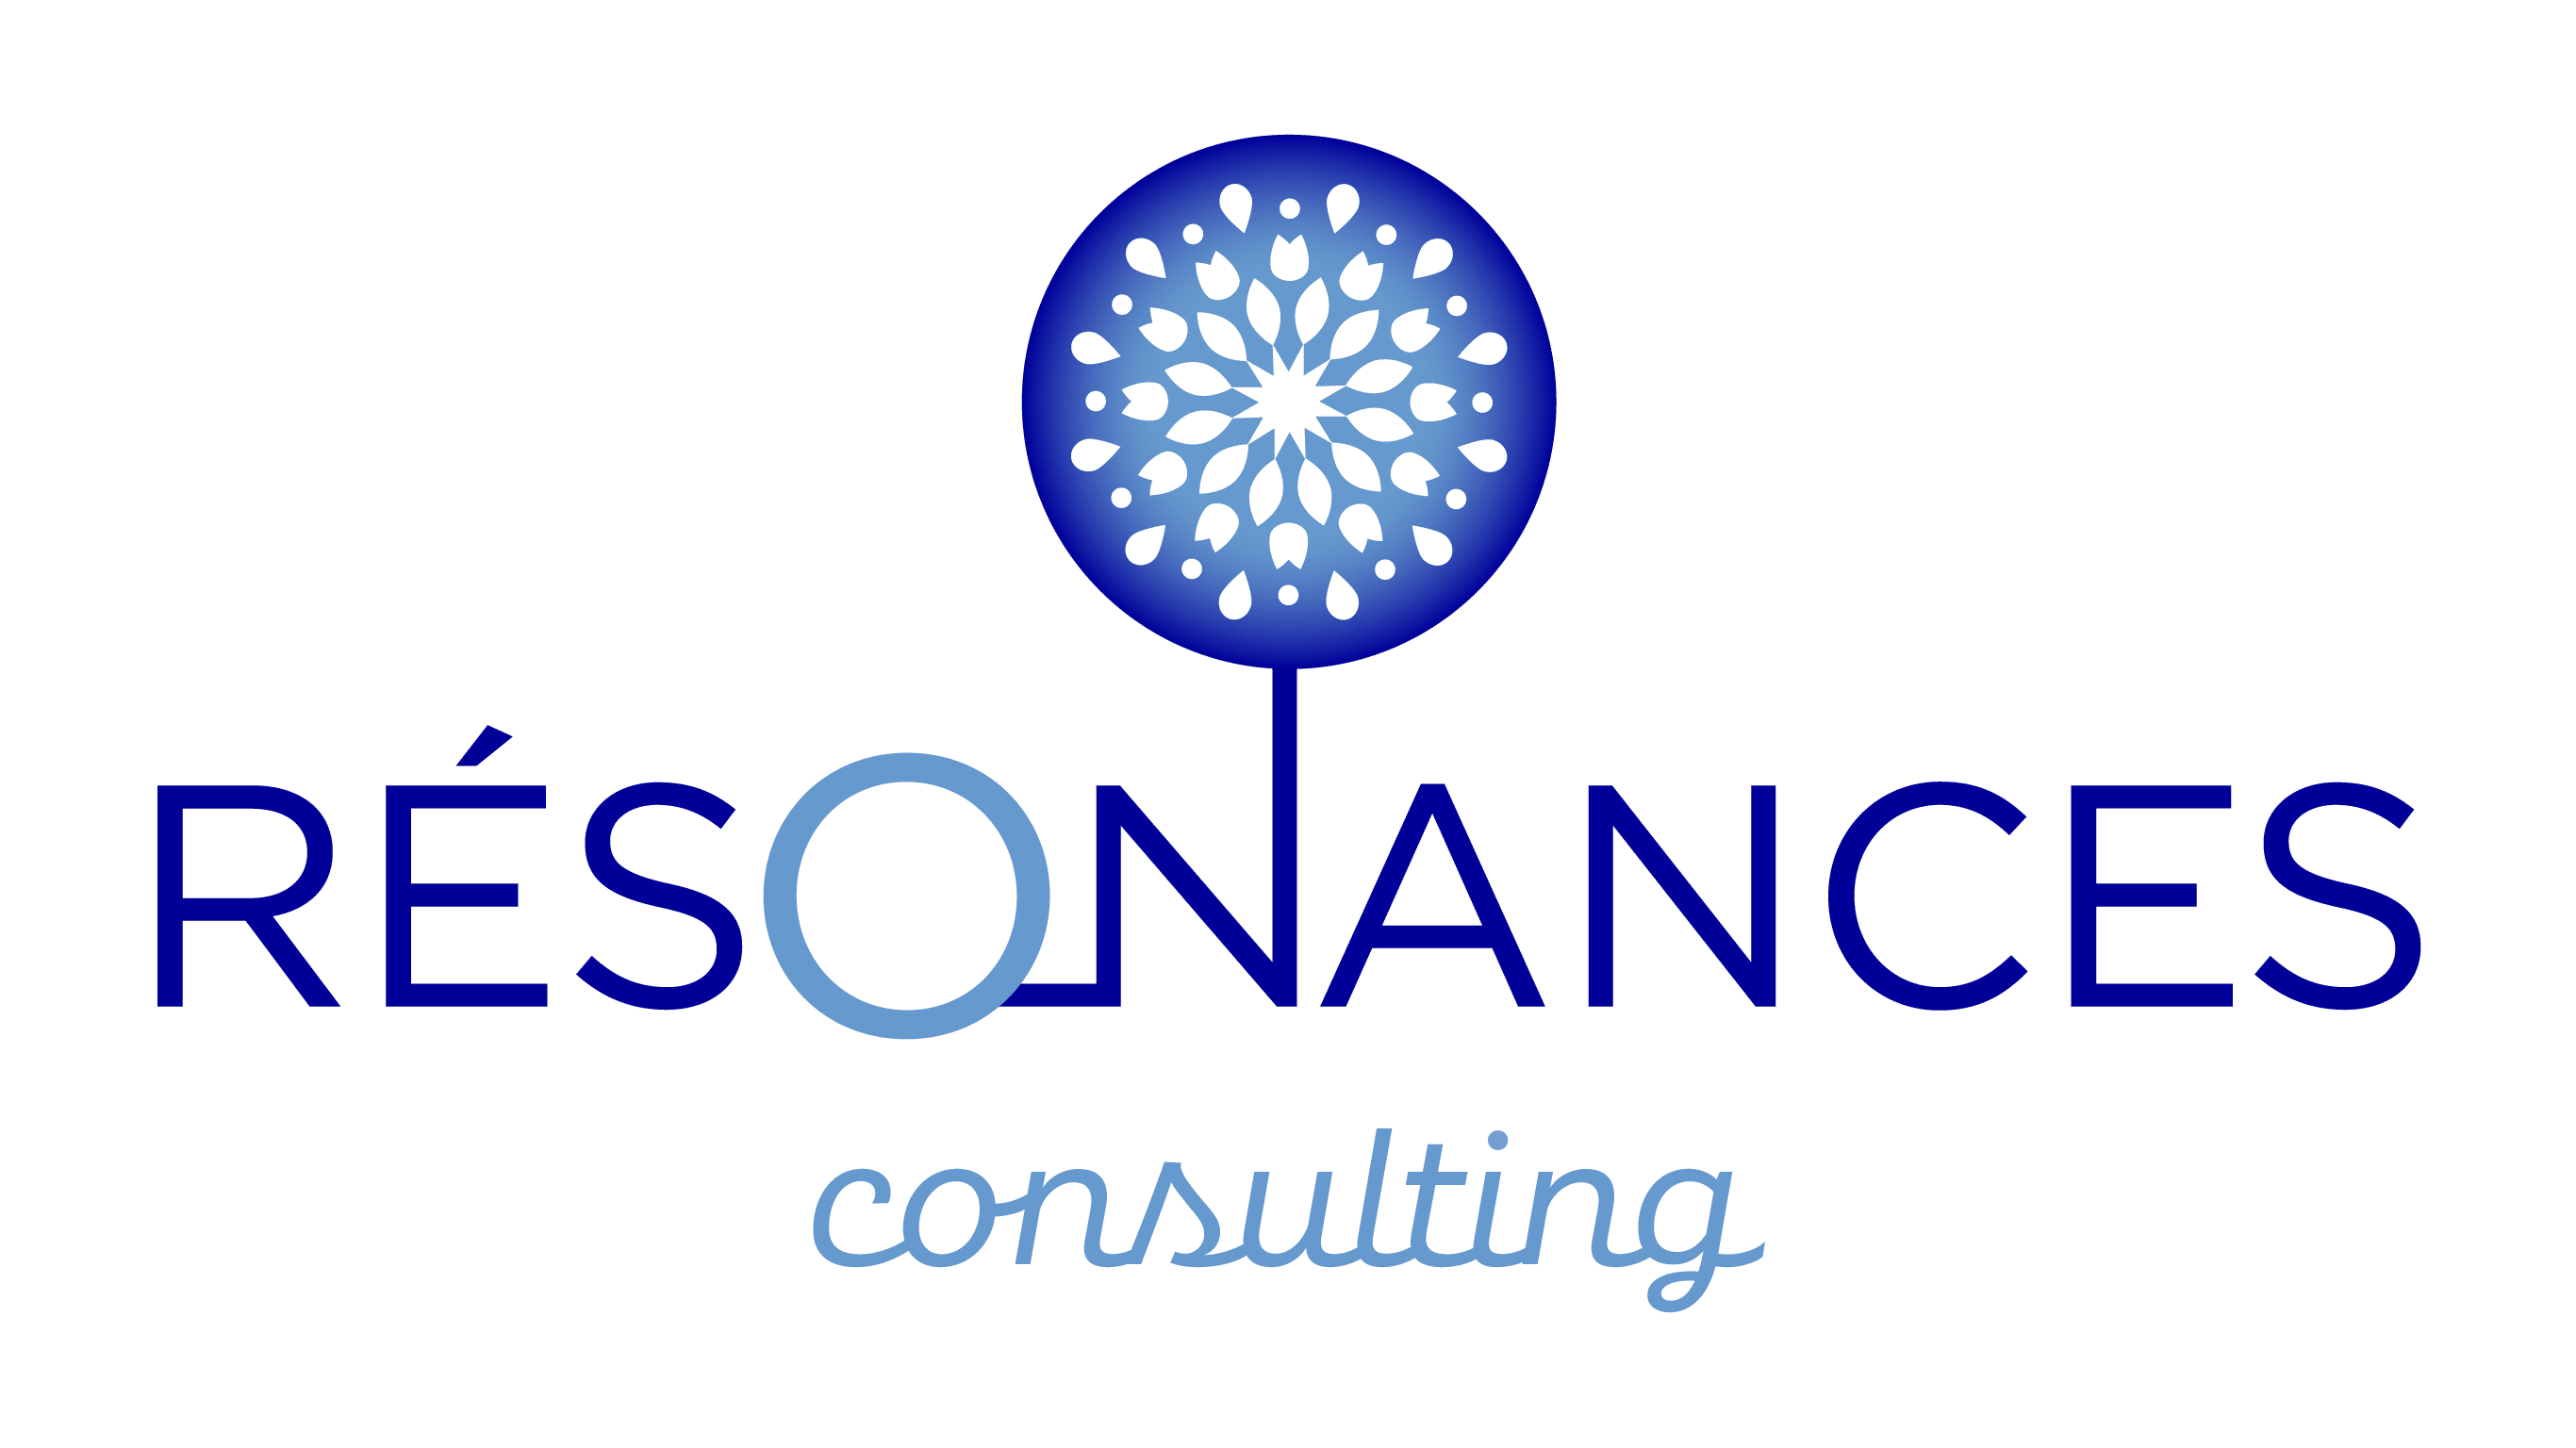 Resonances Consulting